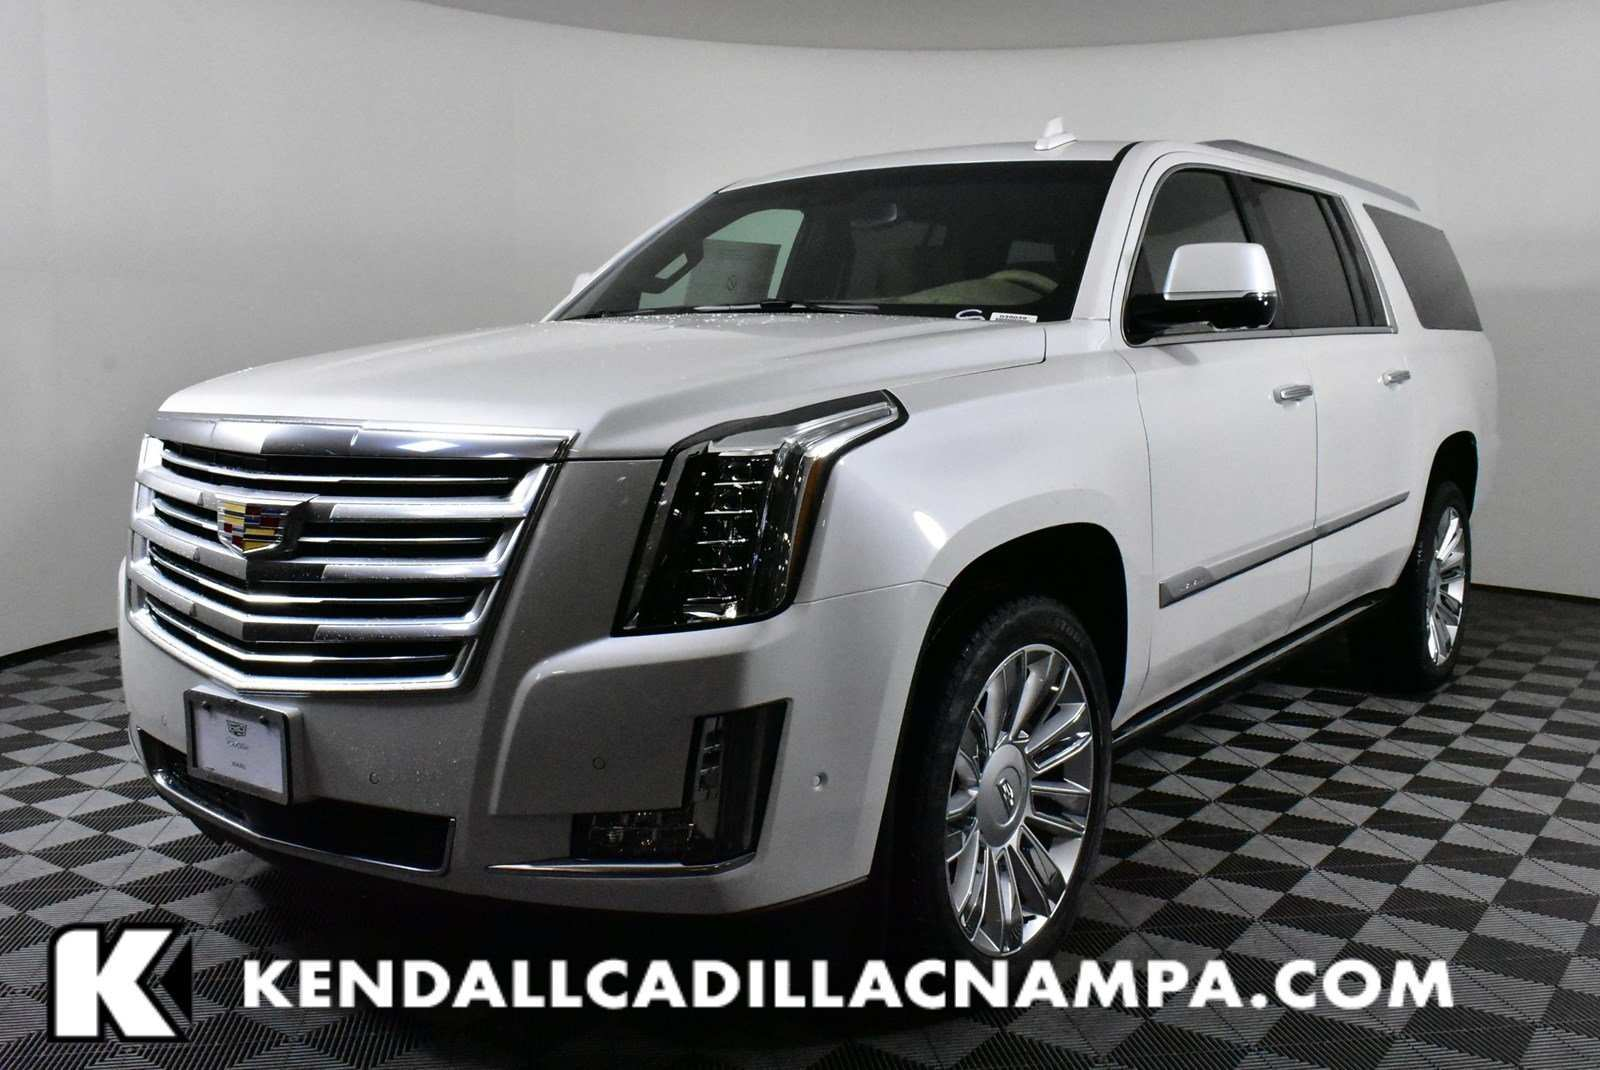 54 Best Review The Cadillac Escalade 2019 Platinum Exterior Price with The Cadillac Escalade 2019 Platinum Exterior